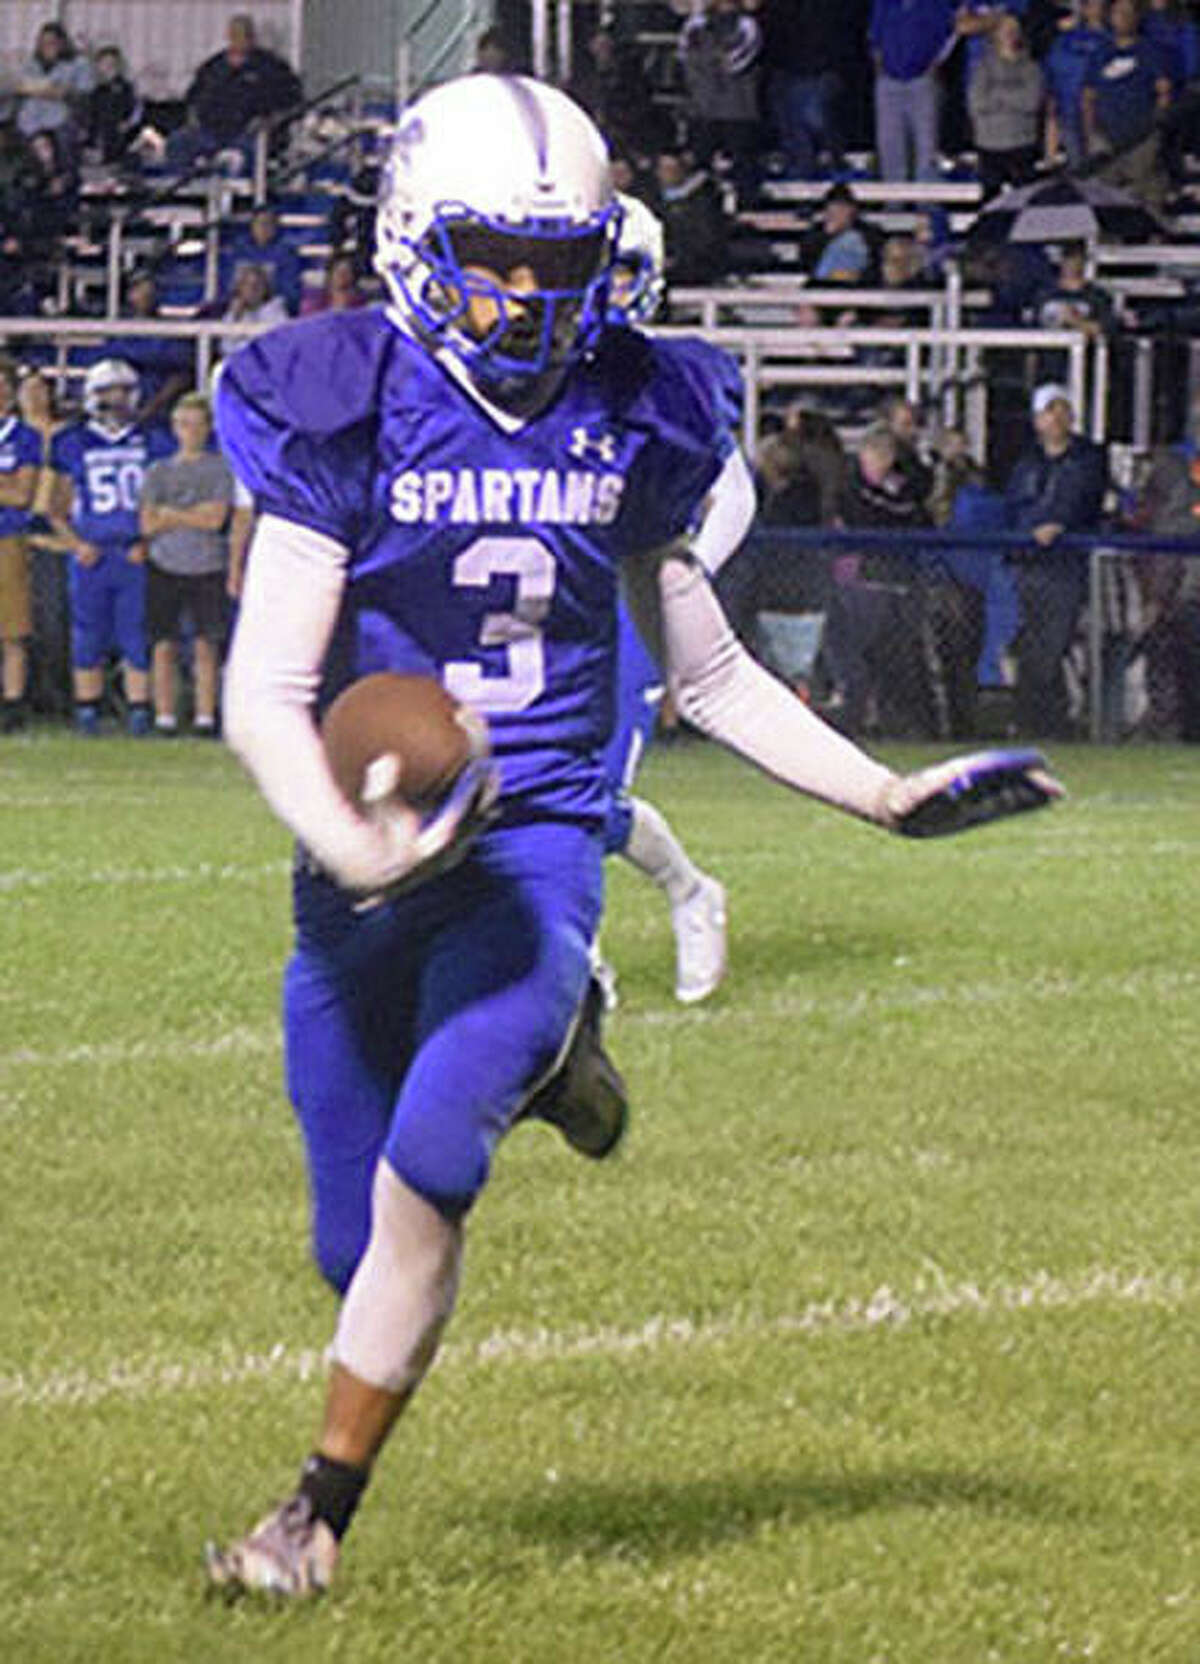 North Greene quarterback Dalton Mitchell turns the corner on a run during the Spartans' victory over Concord Triopia on Friday night in White Hall.